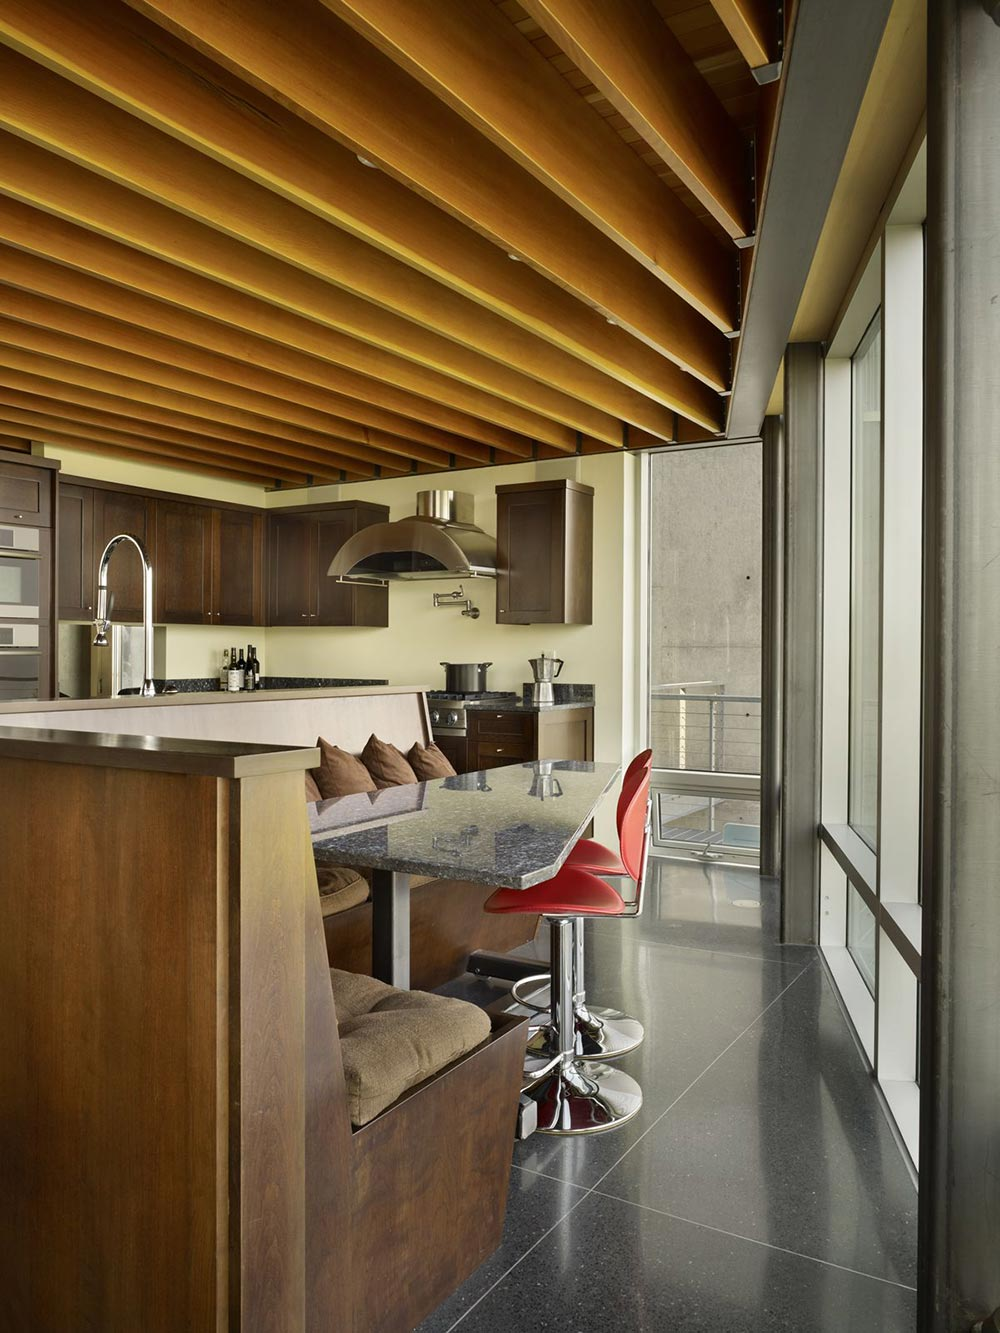 Kitchen, Breakfast Table, Marble Top, Red Chairs, West Seattle Residence with Spectacular Inlet Views